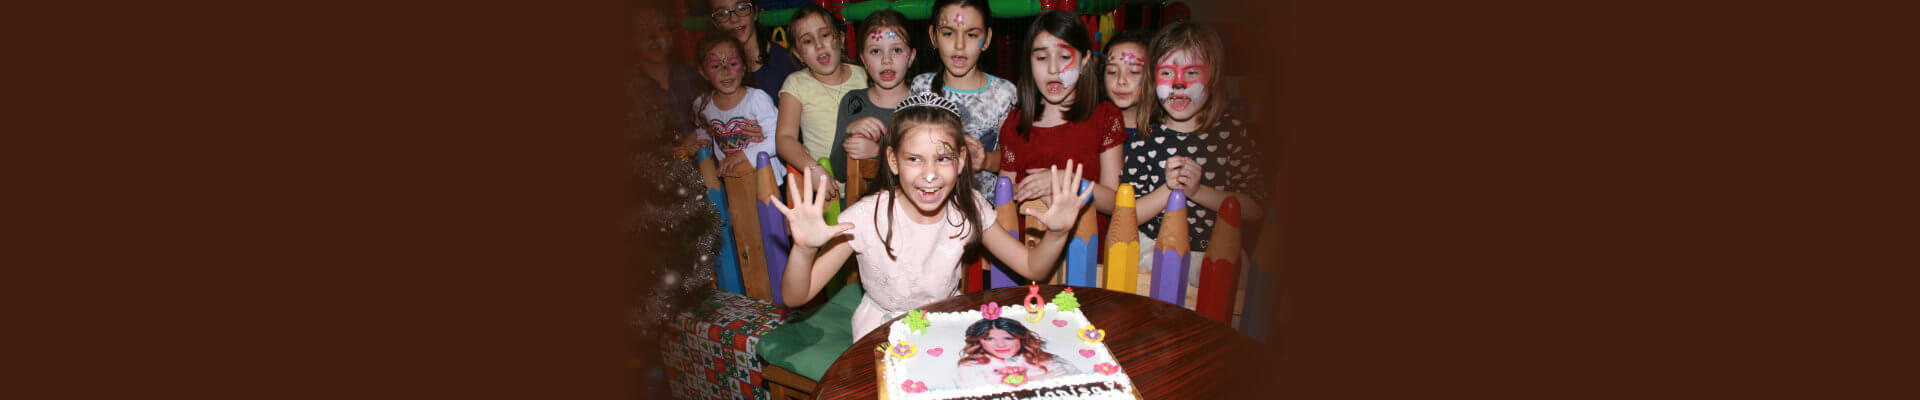 Kids Birthday Venues Dubai